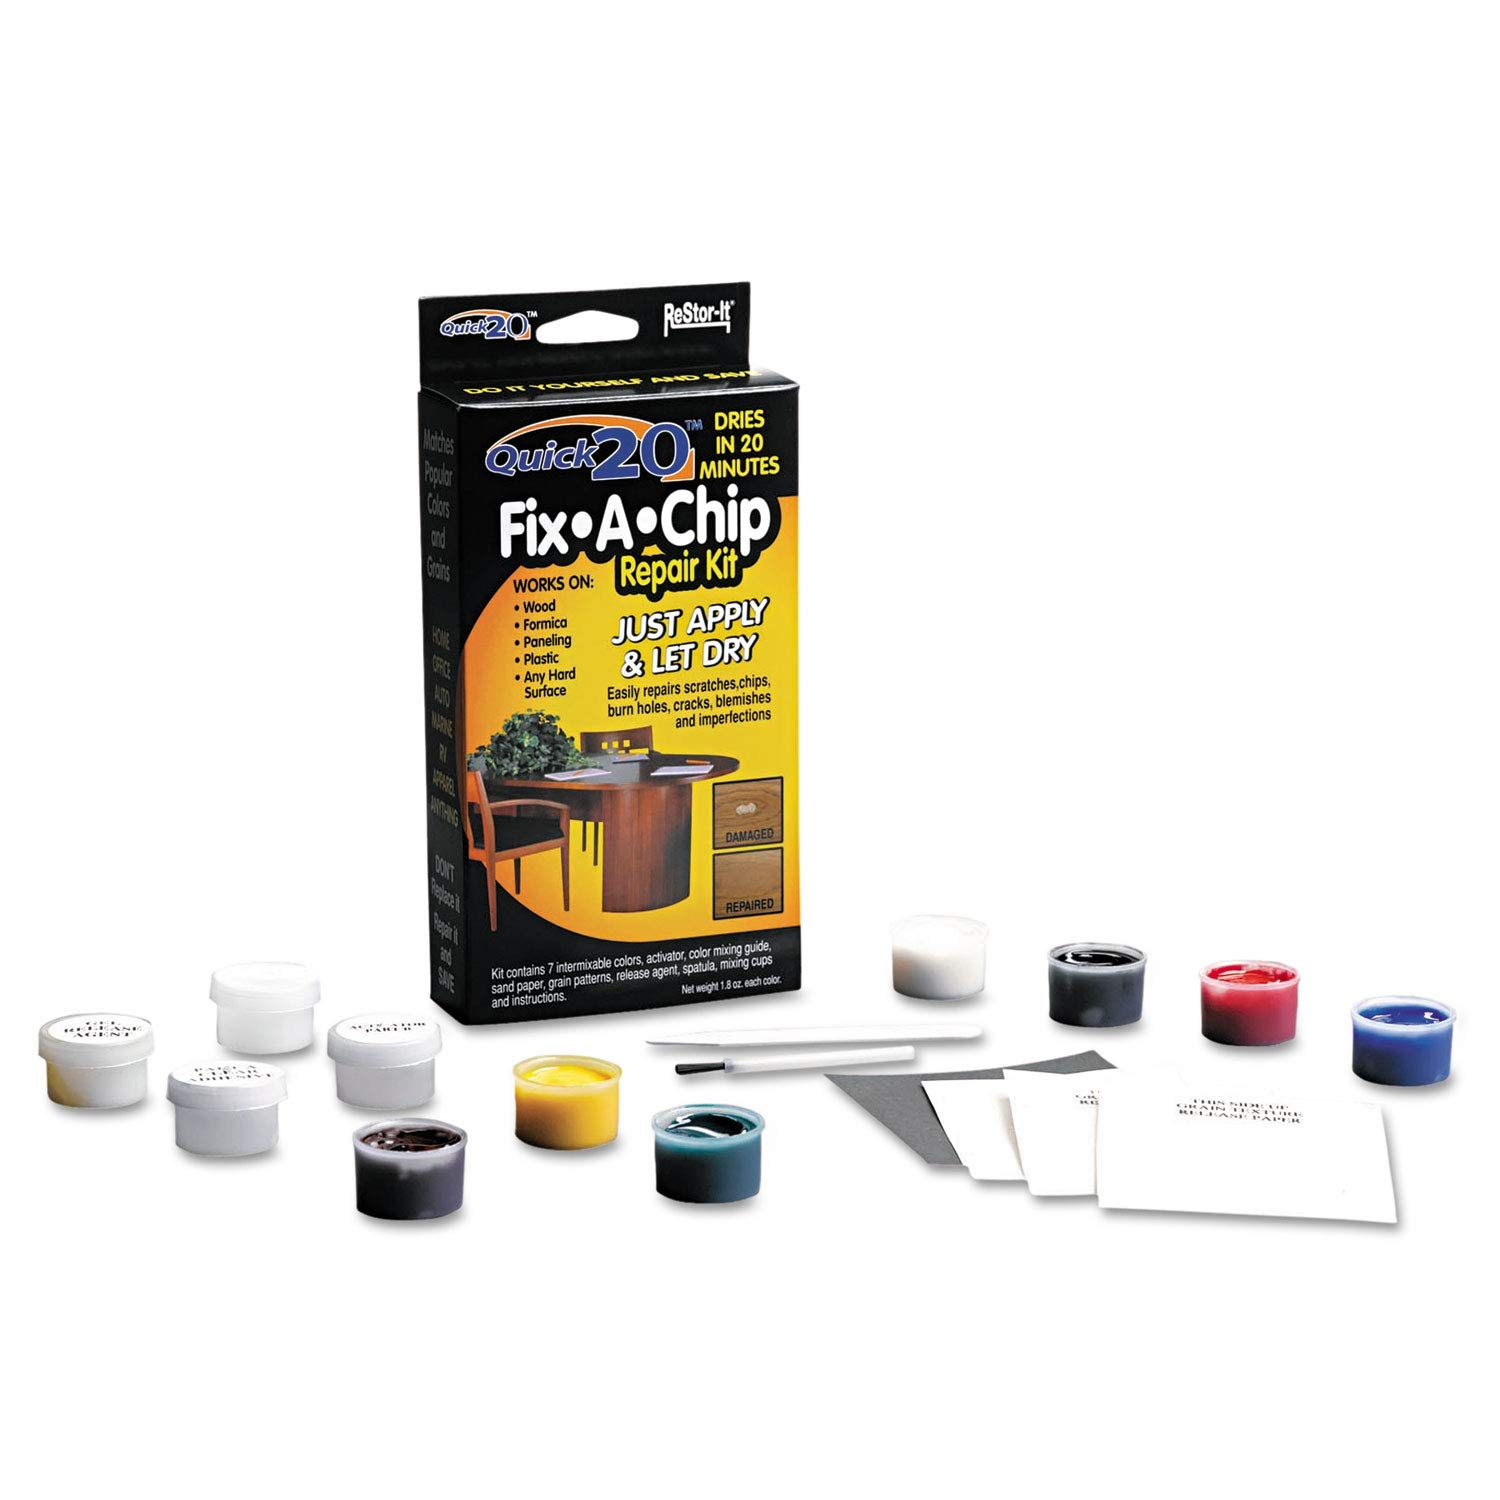 Master Caster ReStor-It Quick 20 Fix-A-Chip Repair Kit - 18084 (Pack of 2)